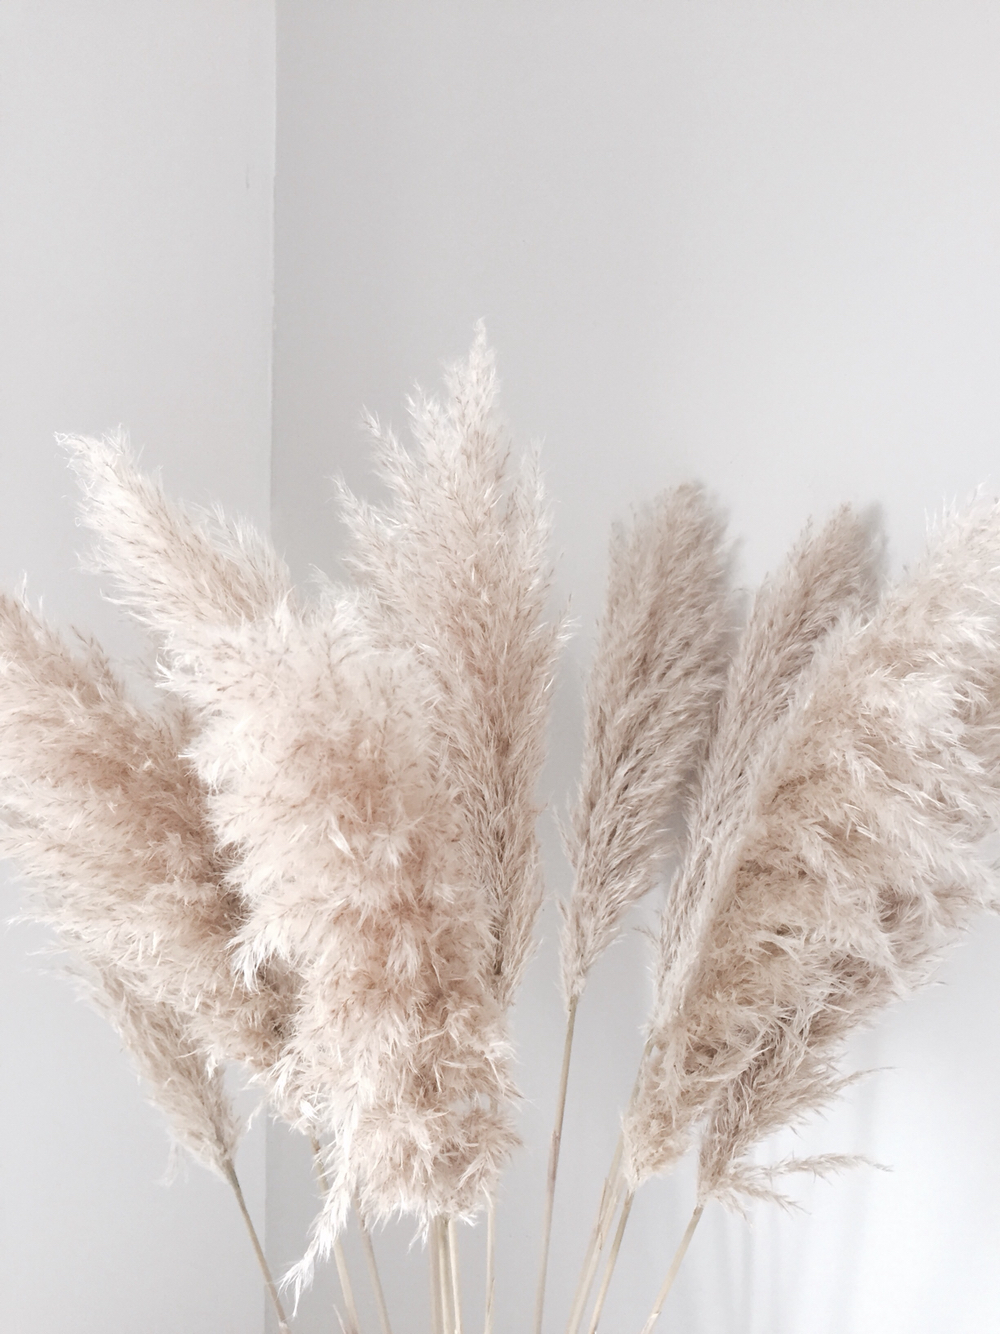 Weddings With Pampas Grass